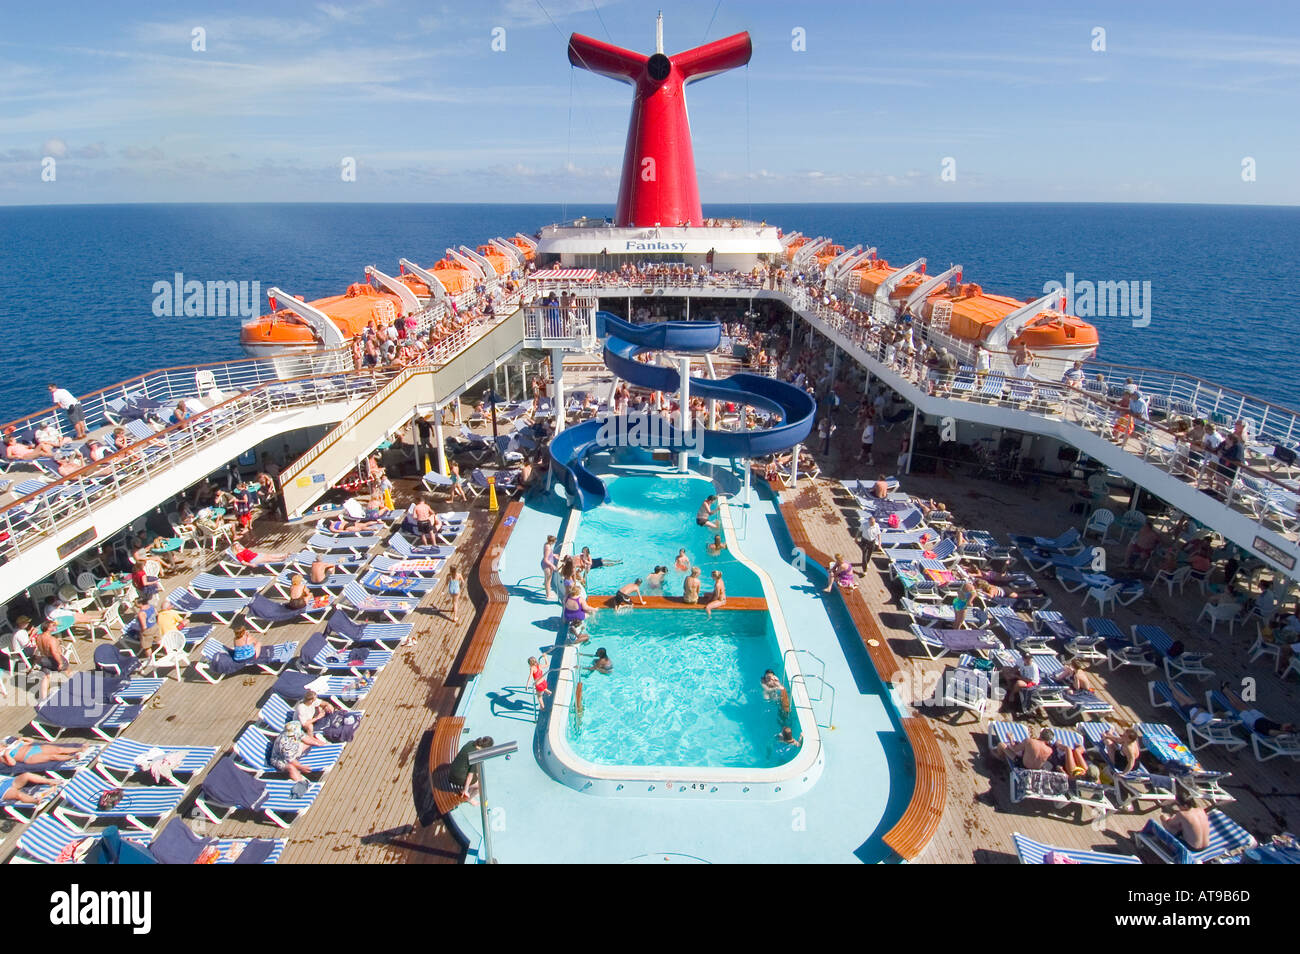 Family Activities Aboard The Carnival Cruise Ship Fantasy From - Fantasy cruise ship pictures